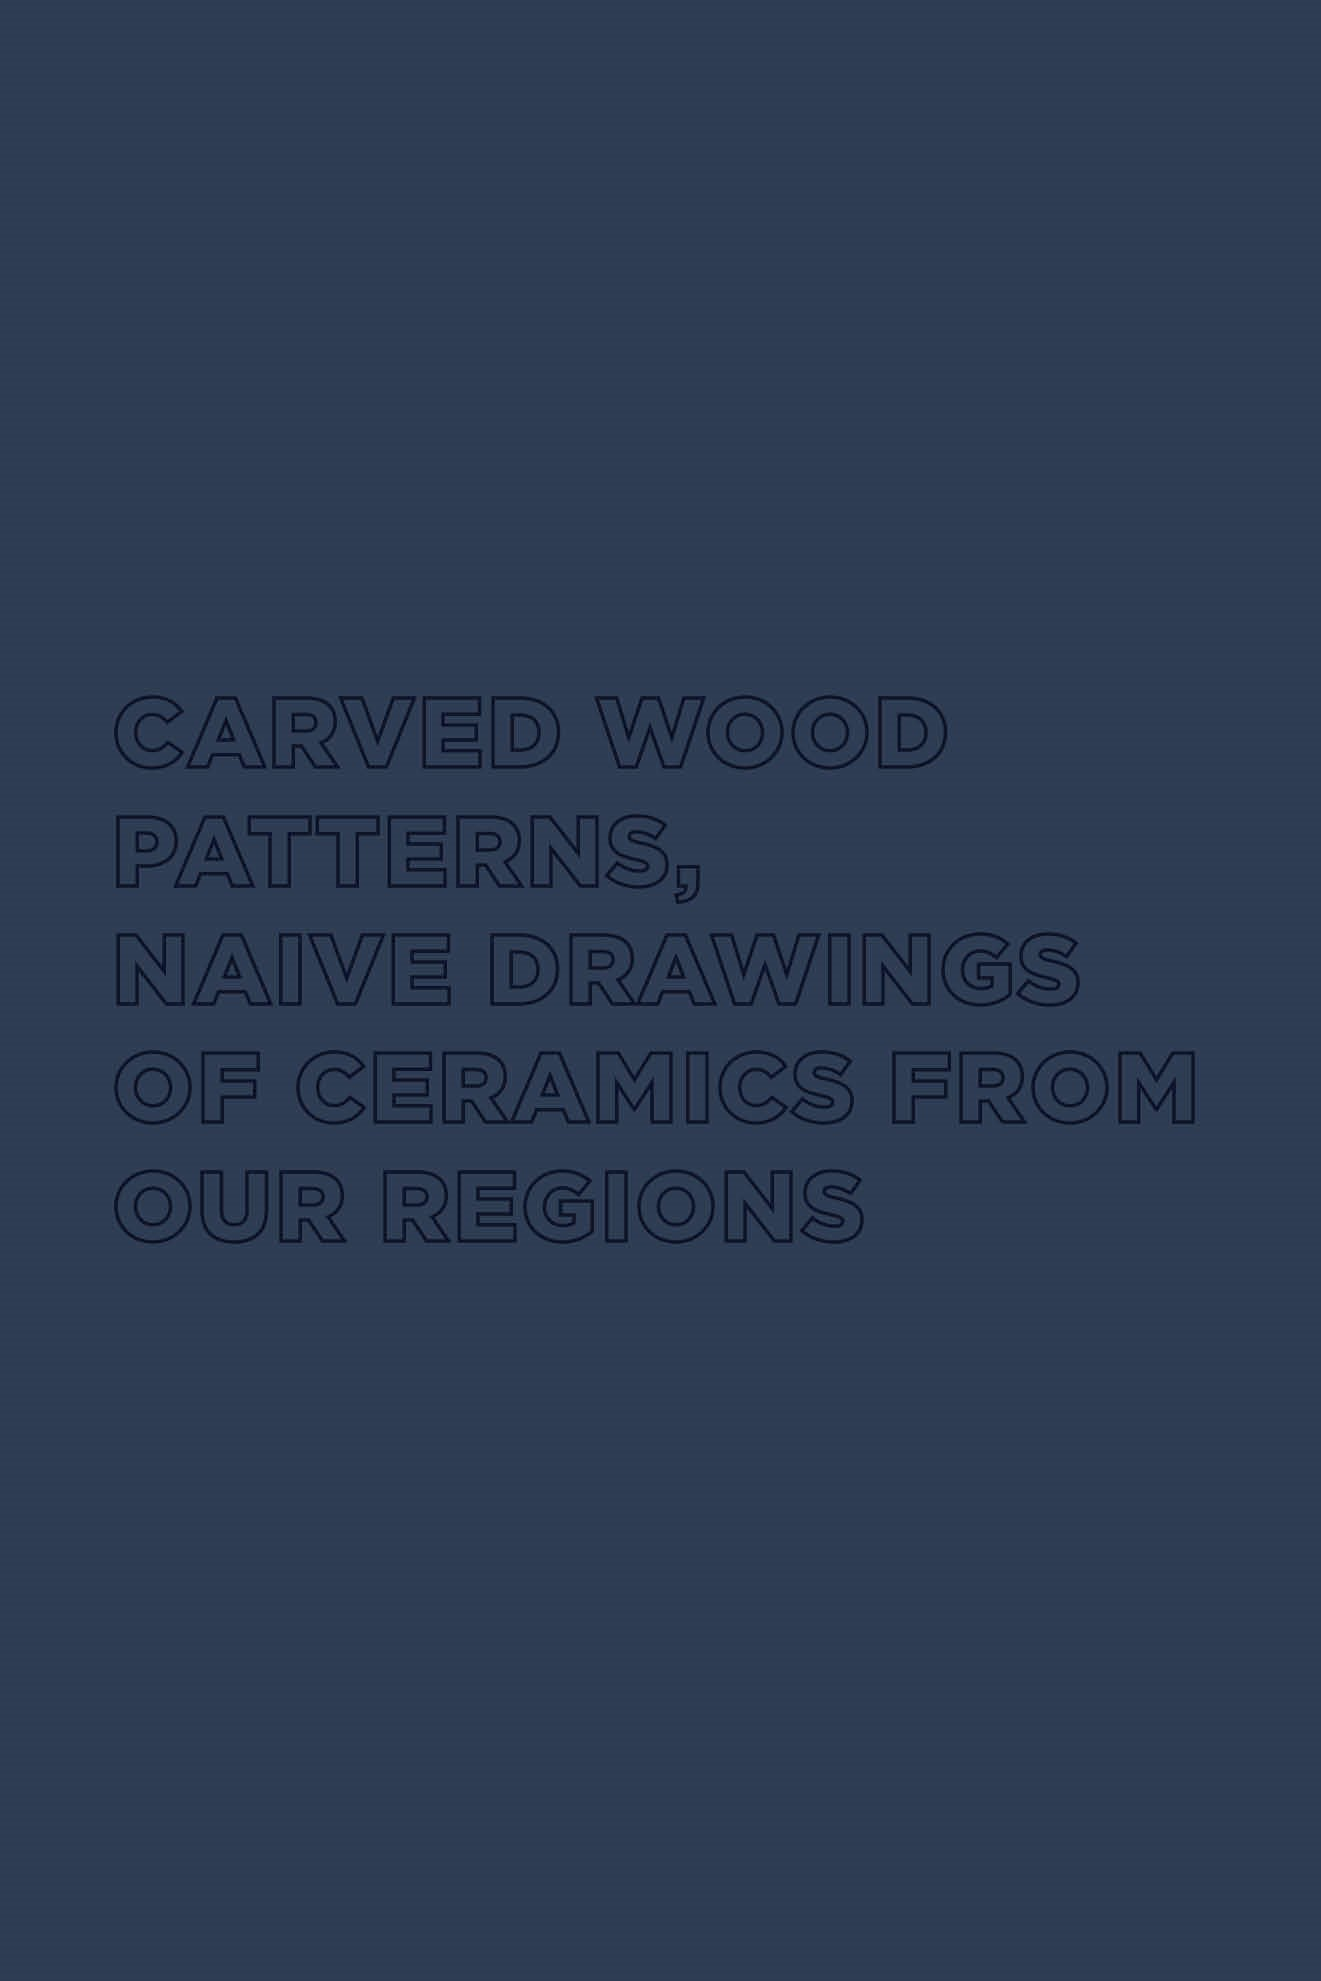 Patterns of carved wood, naive designs of ceramics from our regions